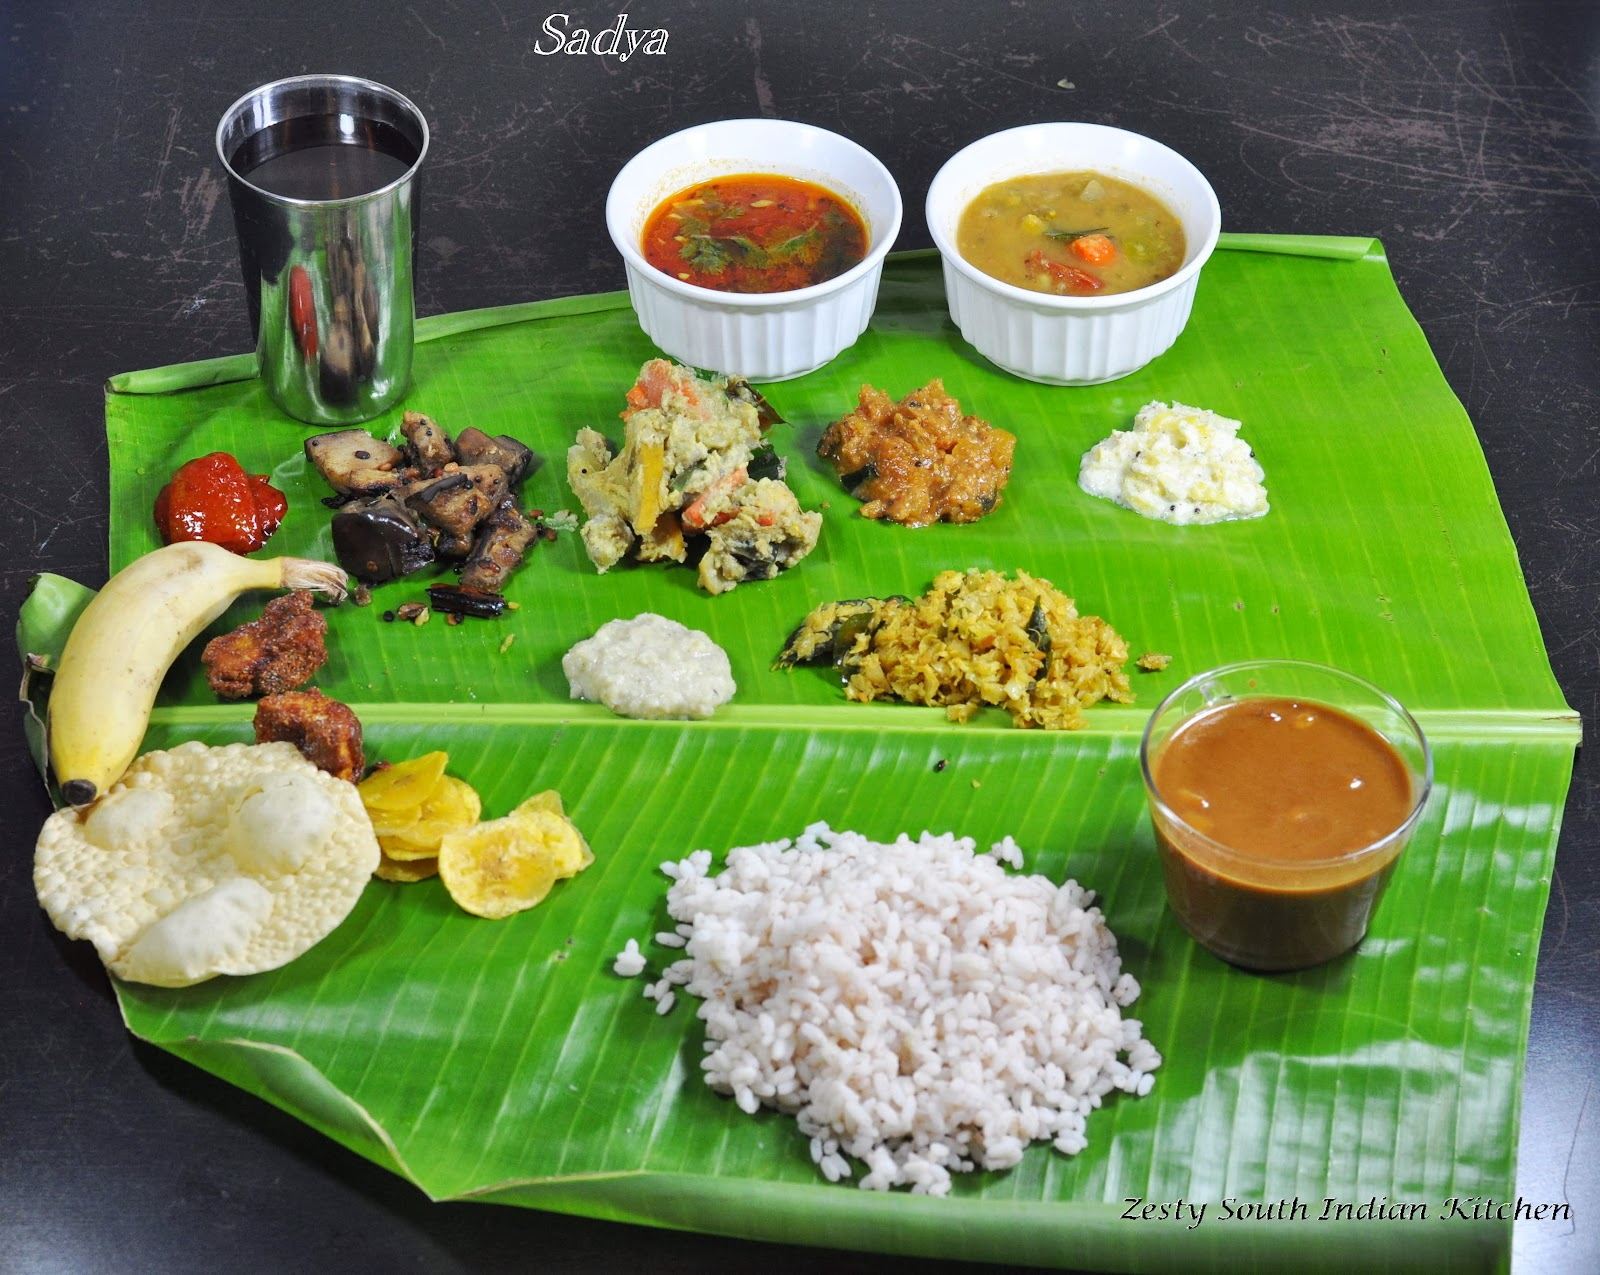 onam recipes zesty south indian kitchen onam recipes forumfinder Choice Image